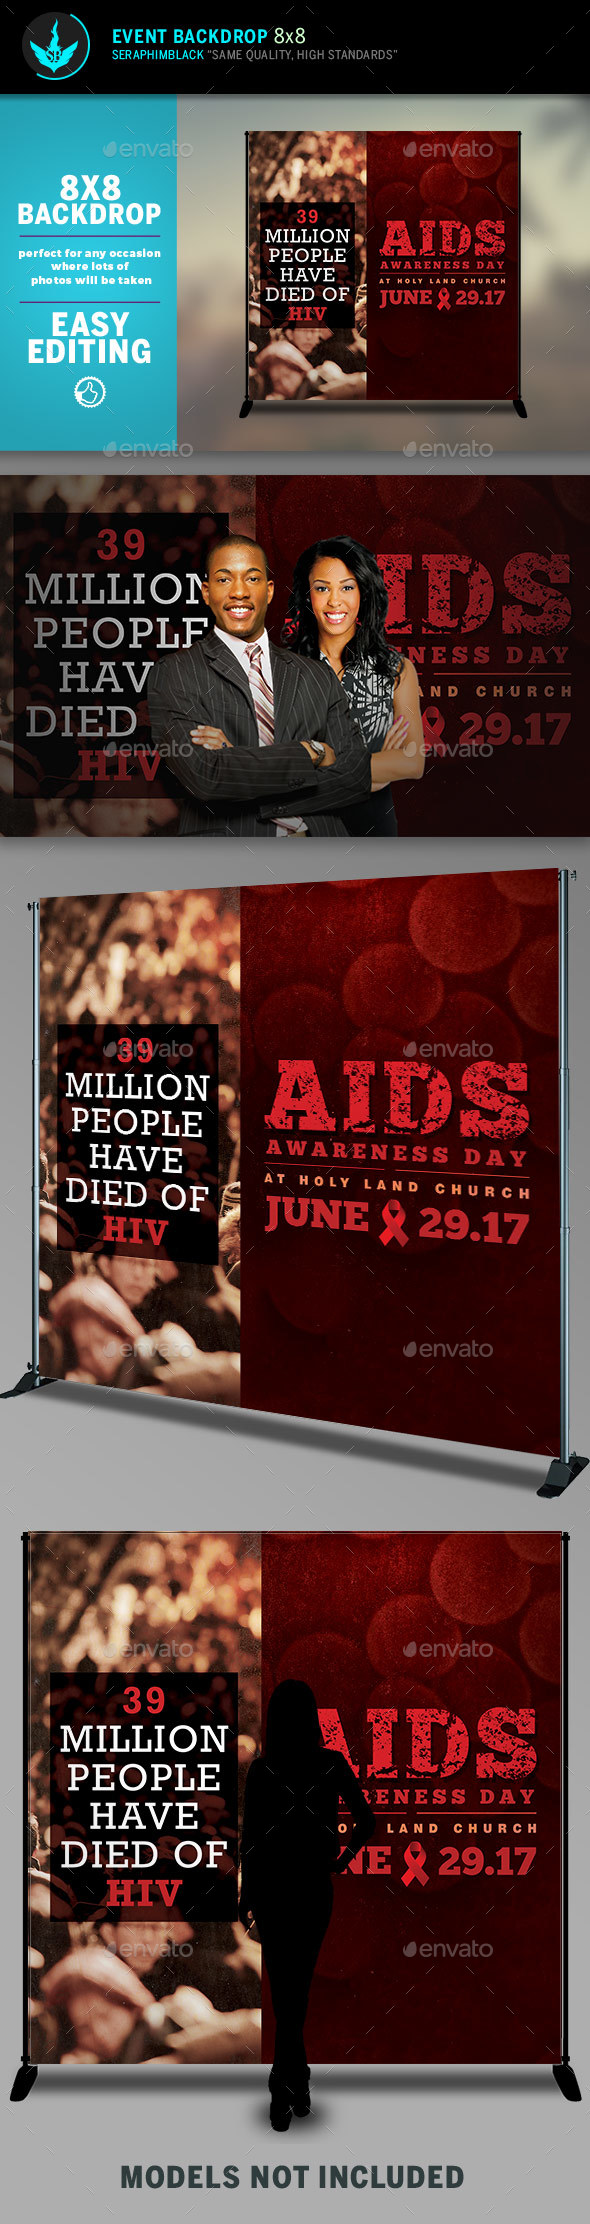 AIDS Awareness 8x8 Event  Backdrop Template - Signage Print Templates